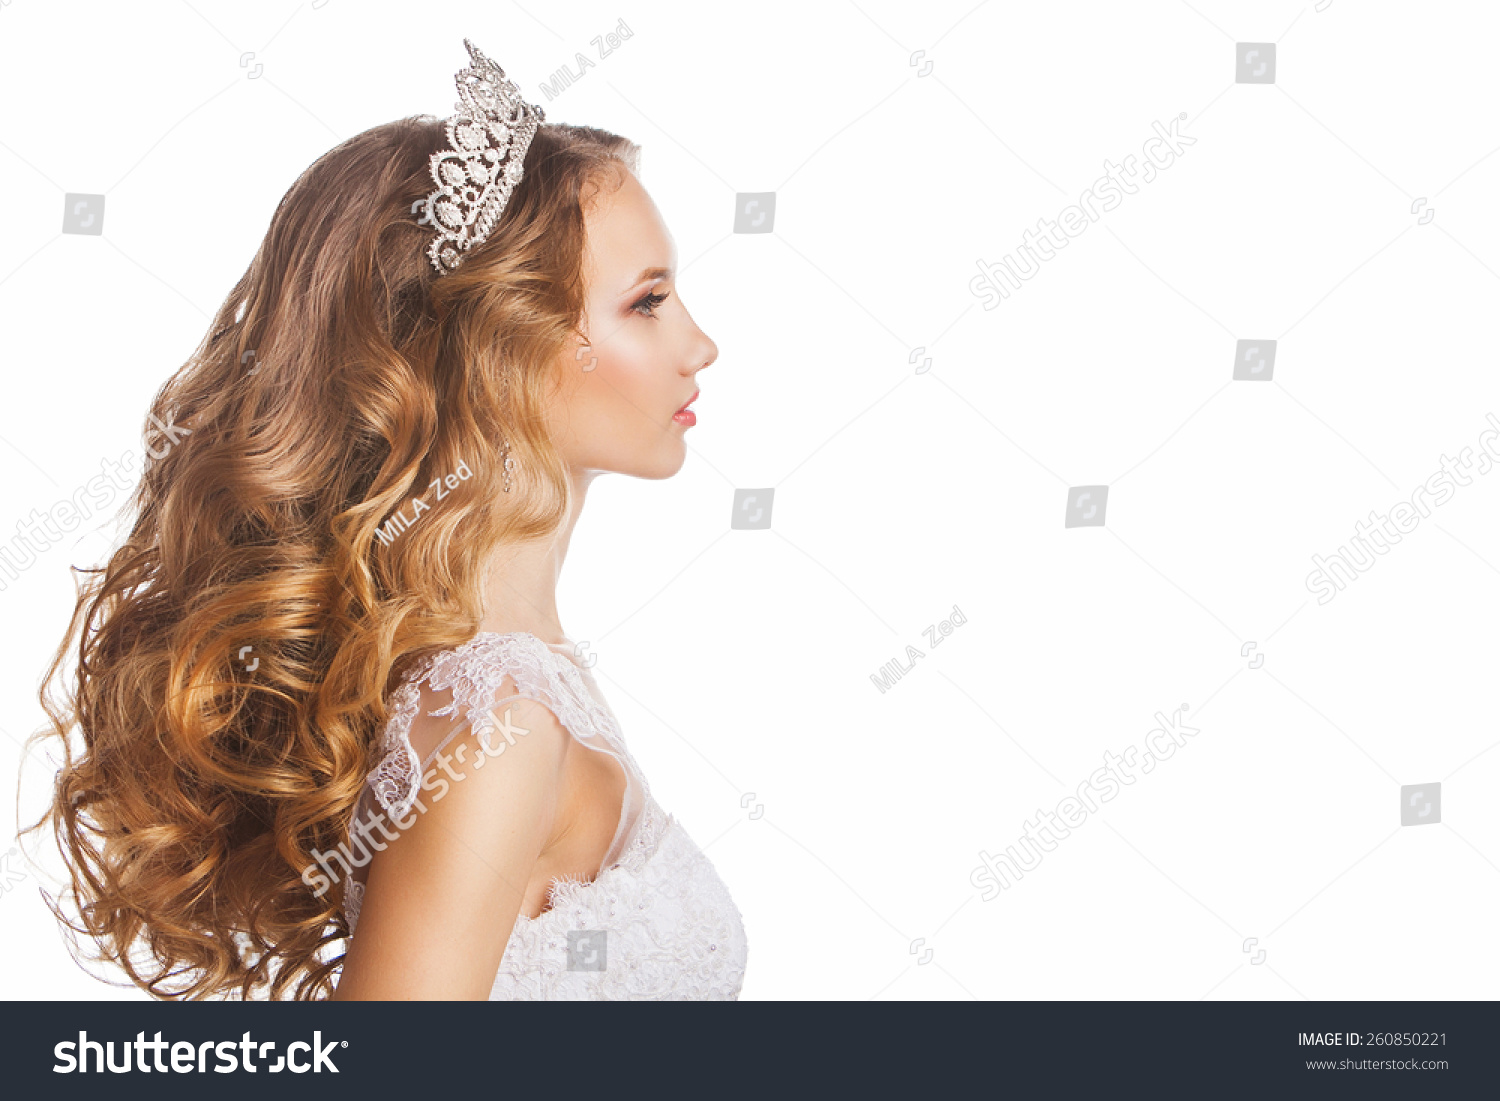 Portrait Bride Tiara Wedding Hairstyle Makeup Stock Photo Edit Now